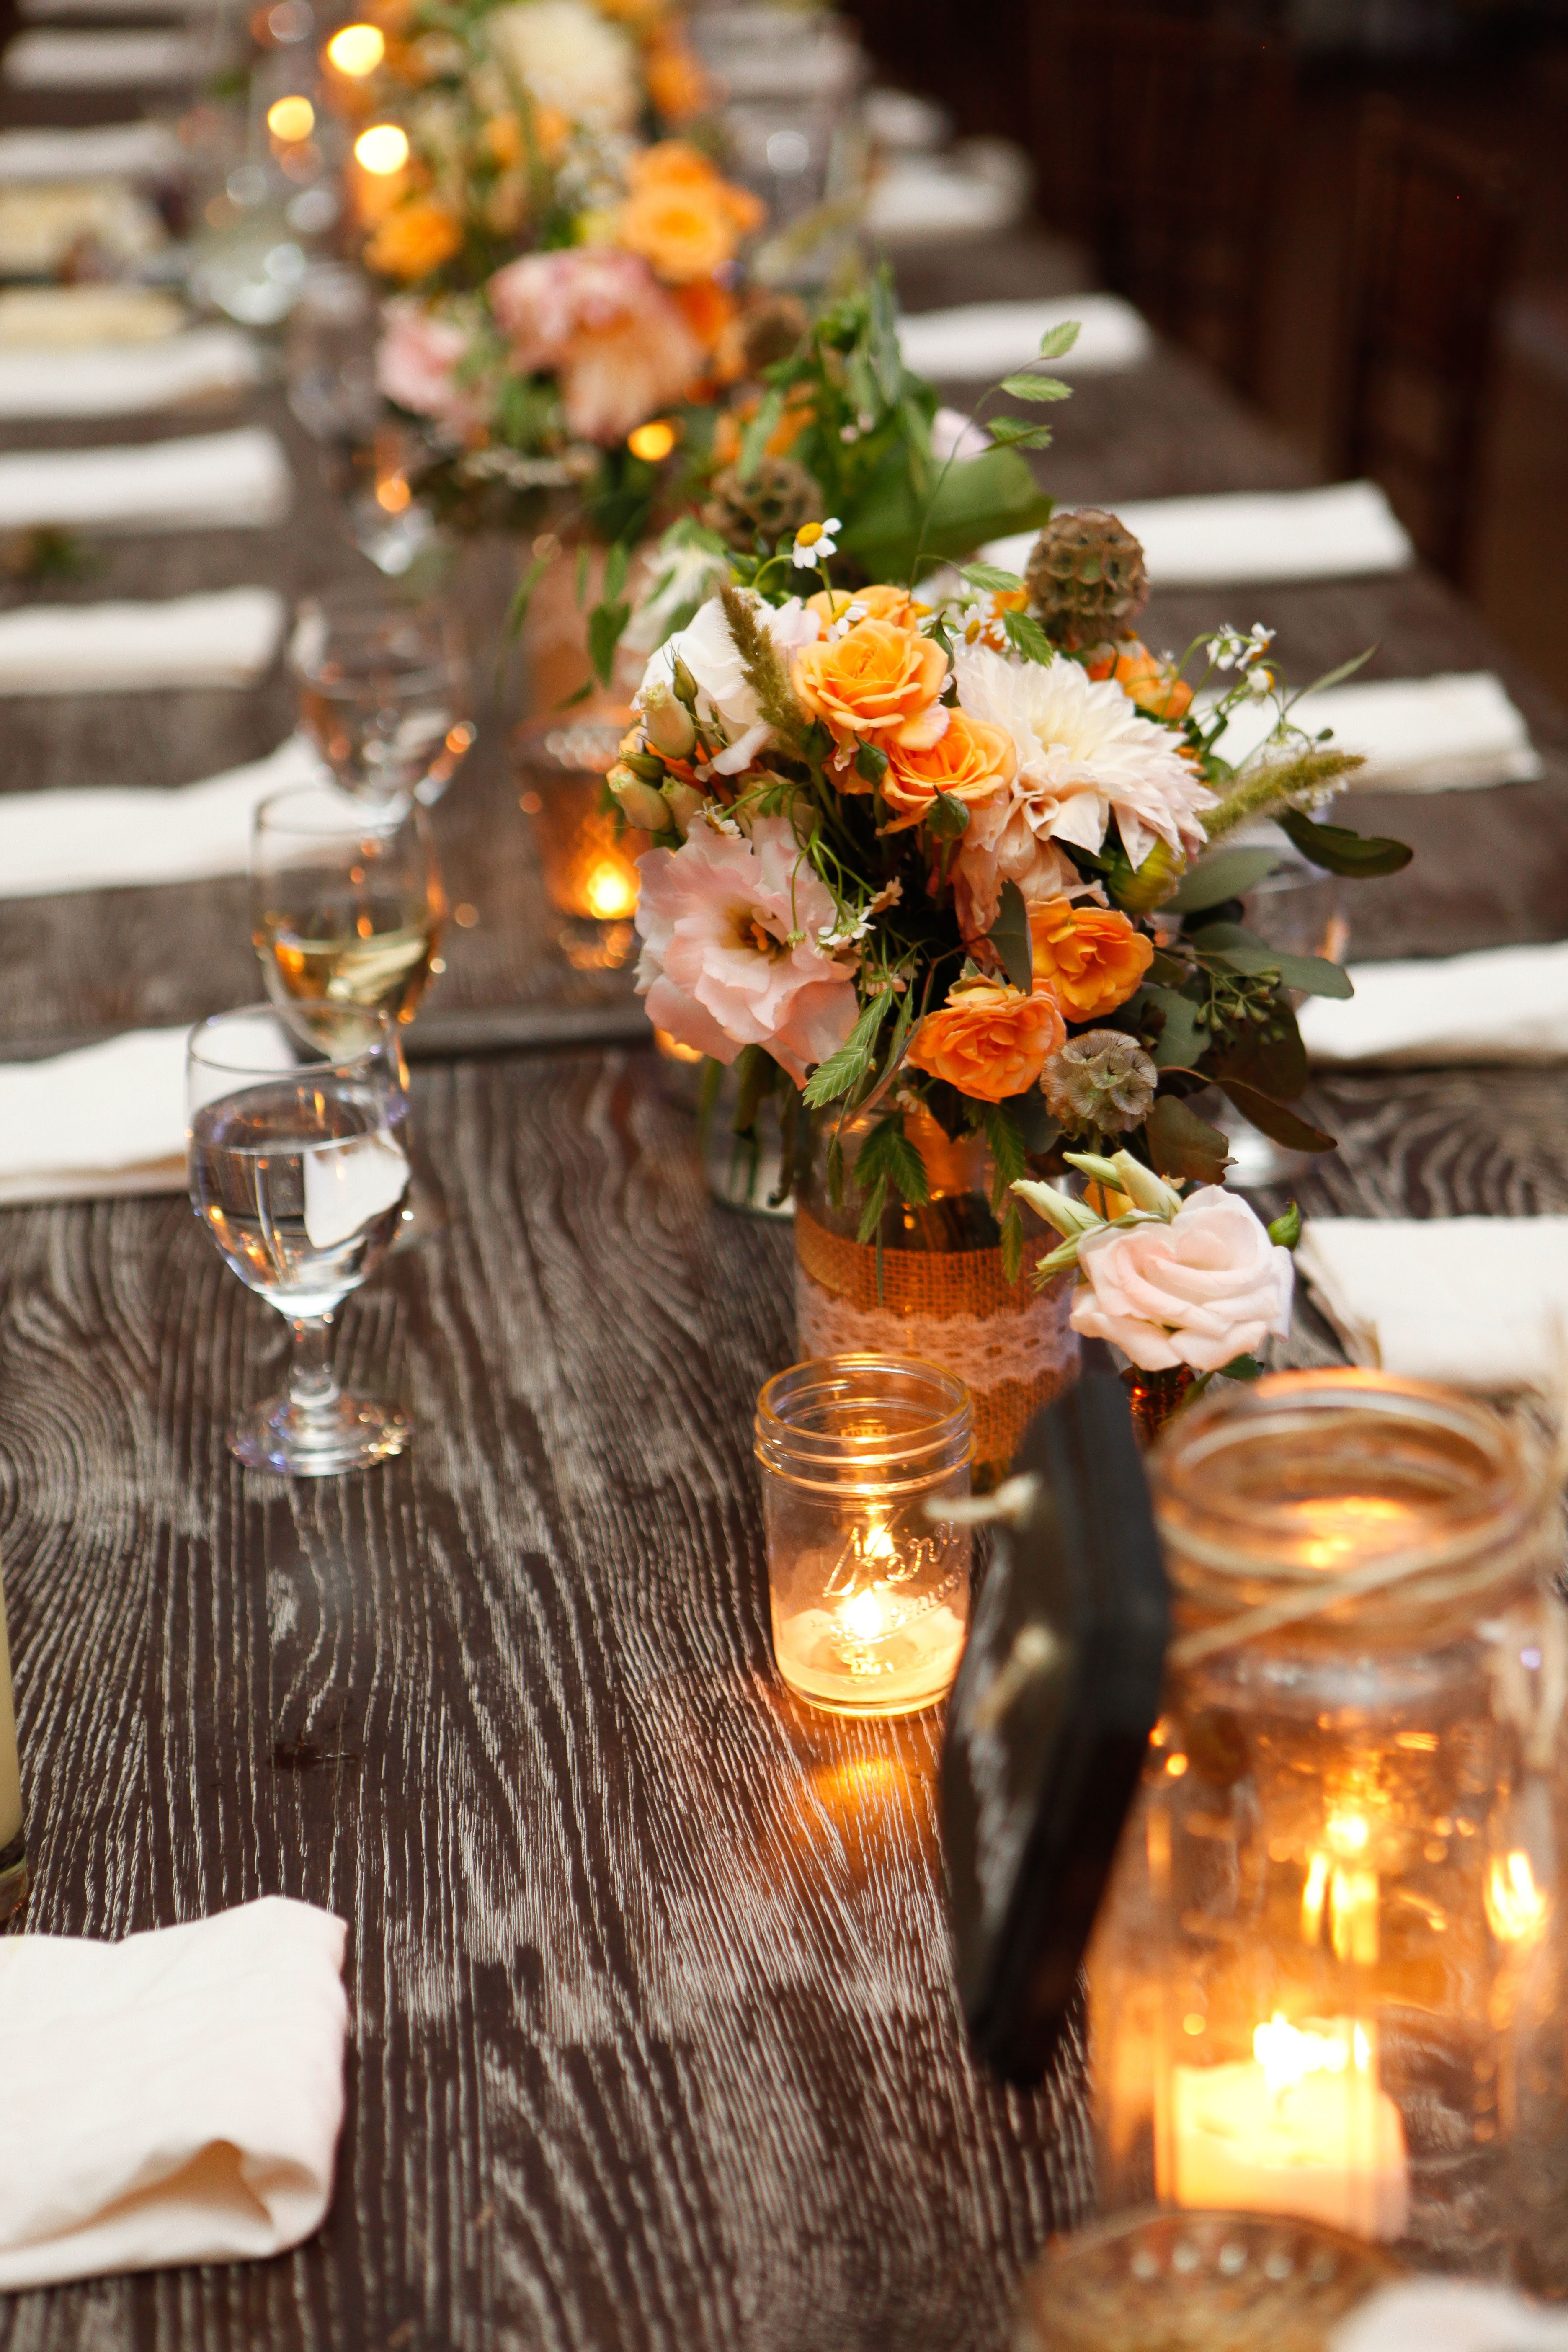 Farmhouse-Table-Wedding-Reception-Centerpiece-Ideas ... |Farmhouse Table Wedding Reception